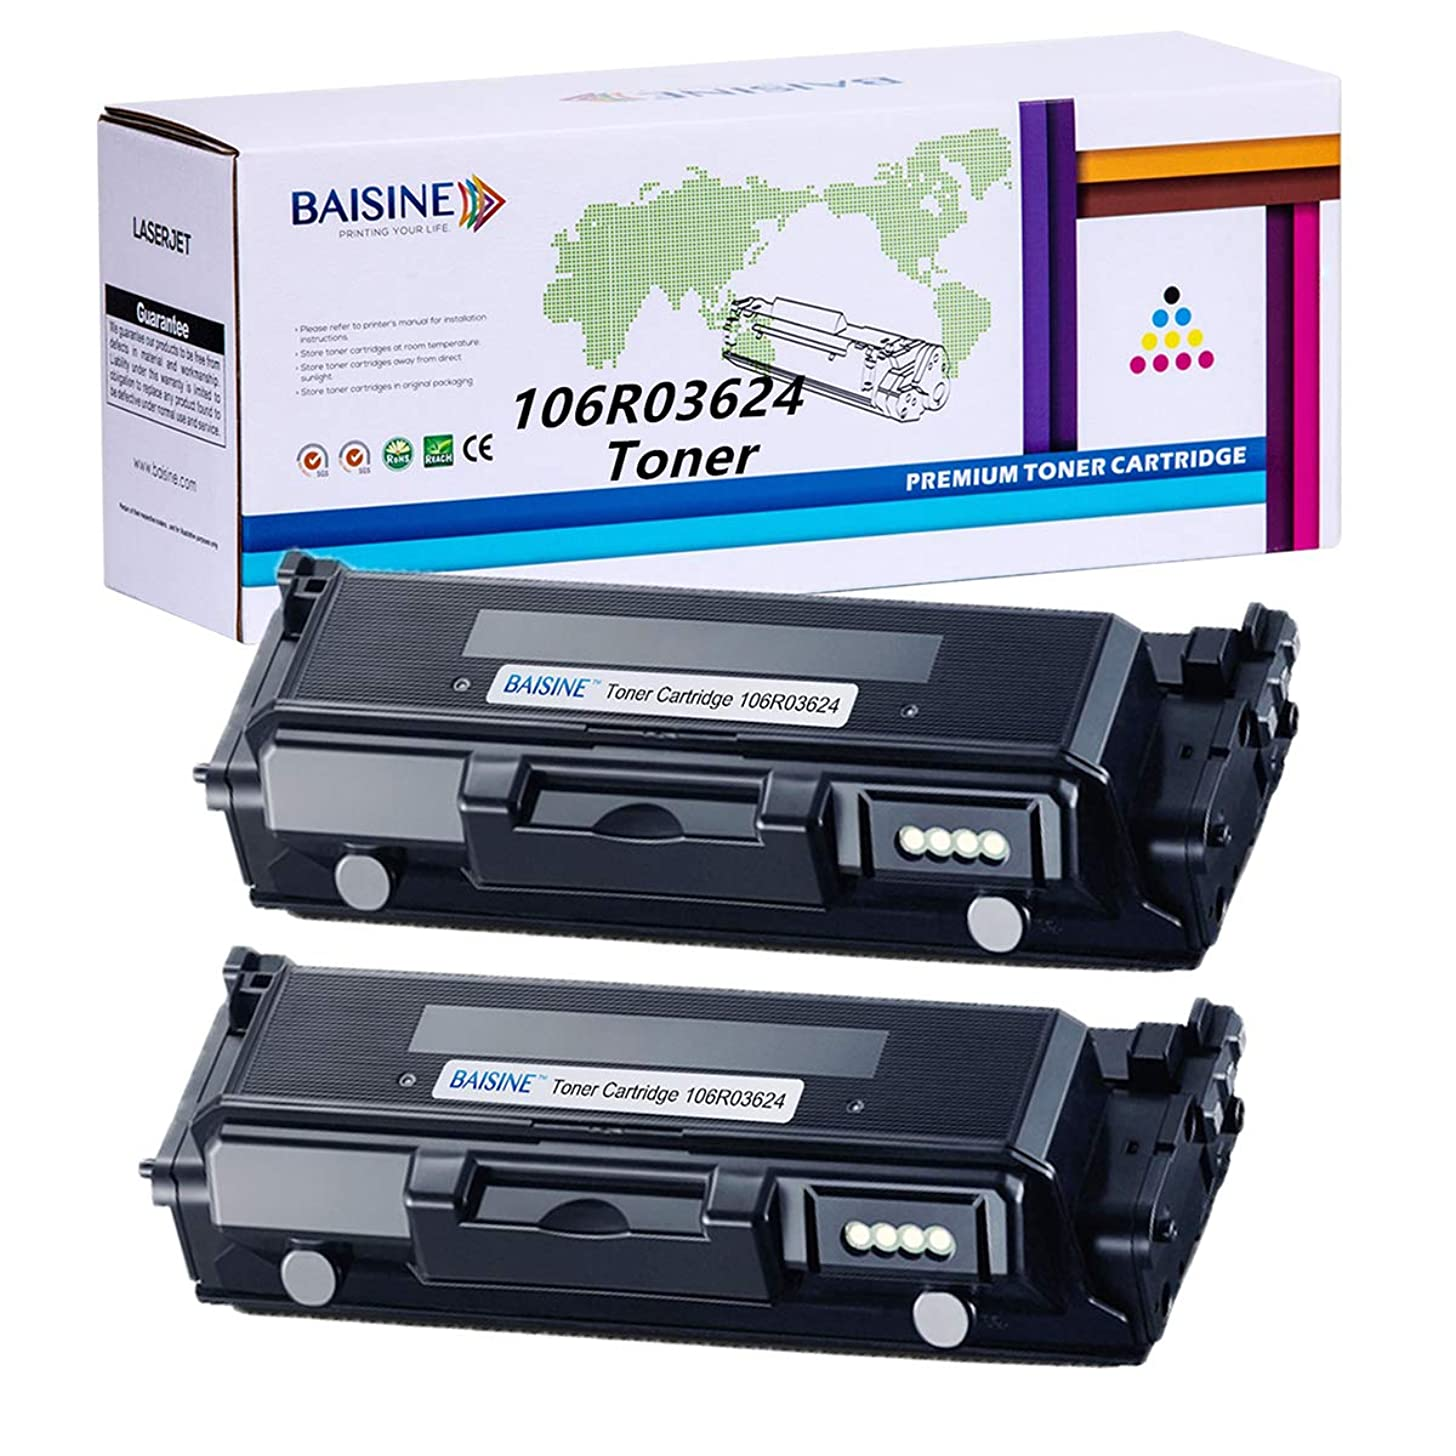 WorkCentre 3335 Toner, BAISINE 2-Pack Compatible 106R03624 Toner Cartridges Replacement for Xerox WorkCentre 3335, WorkCentre 3345, Phaser 3330 Toner – High Yield 15,000 Pages